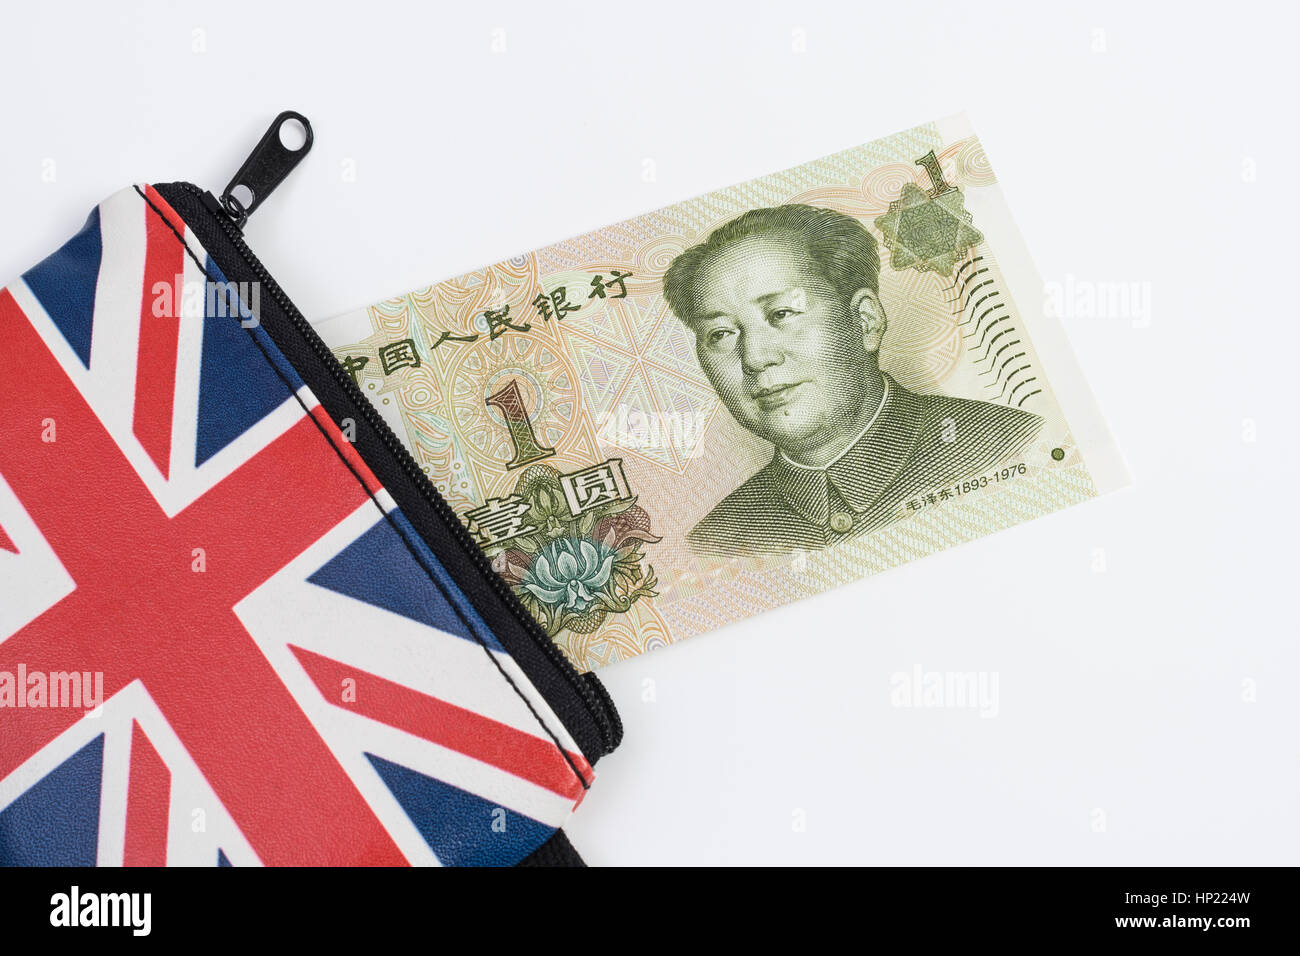 Union Jack coin purse with Chinese 1 Yuan banknote - as metaphor for Yuan / Renminbi-Sterling exchange rate. - Stock Image